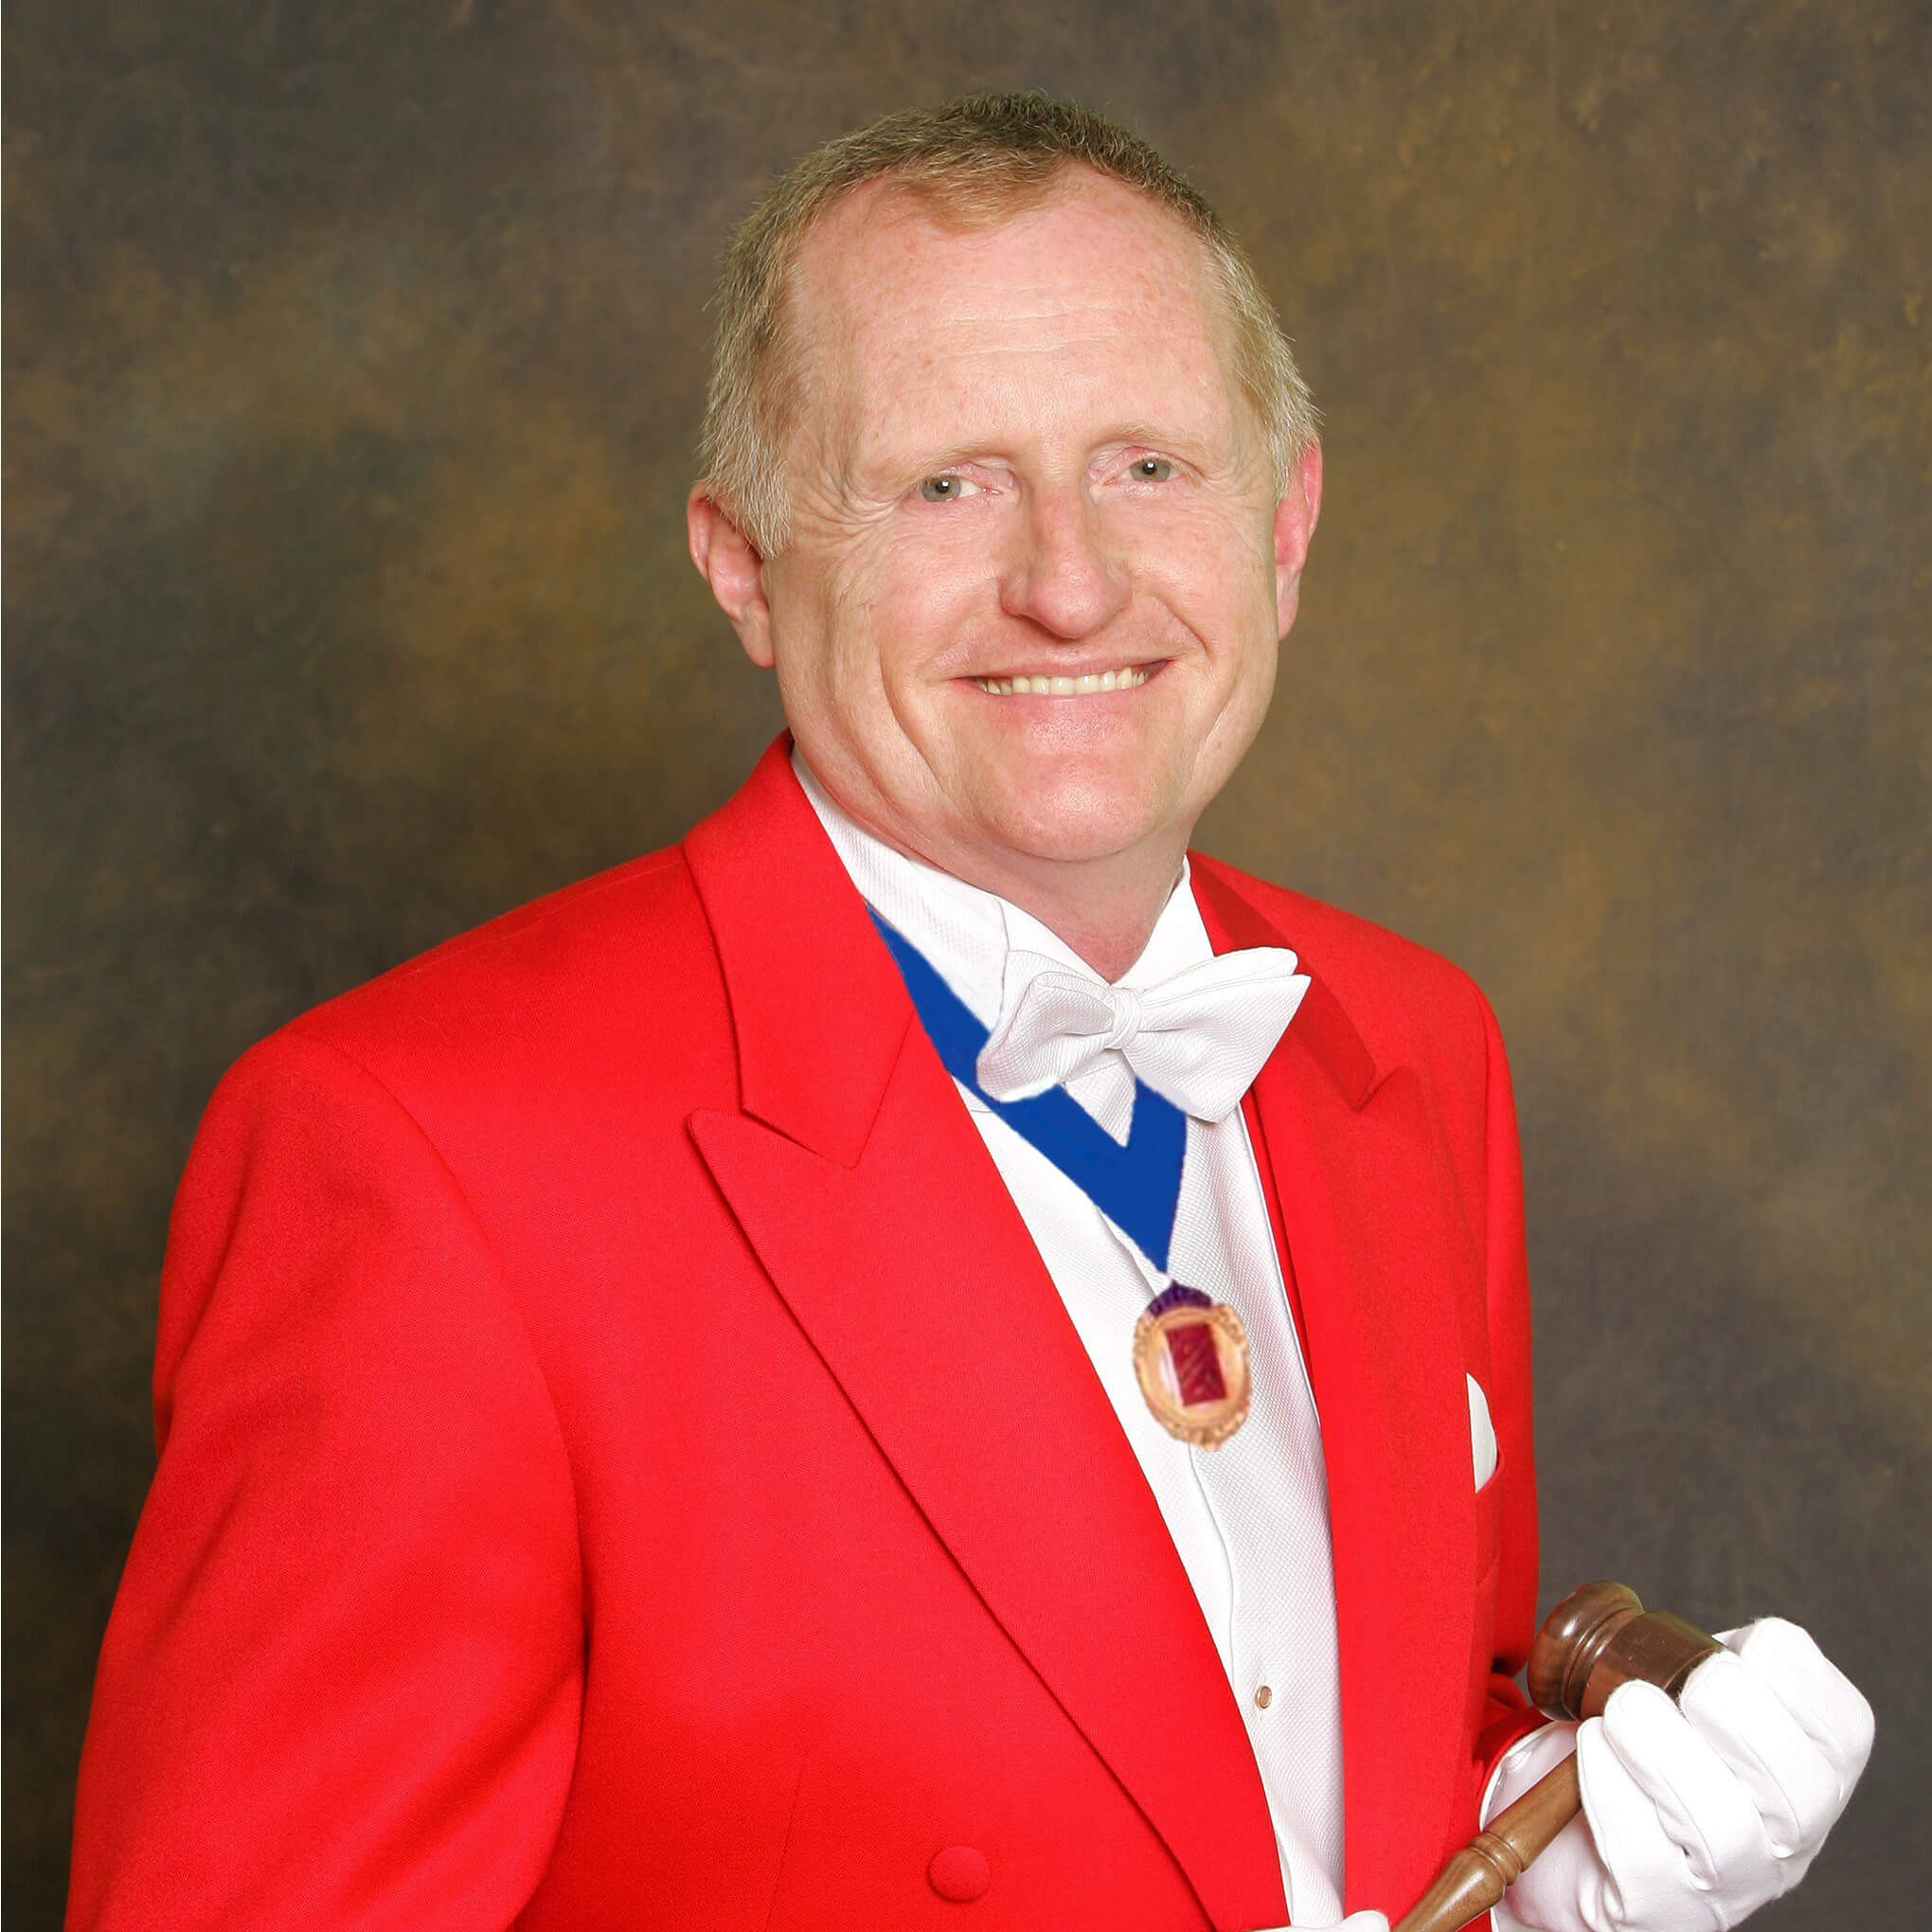 Professional Toastmaster and Master of Ceremonies Essex - Richard Cawte